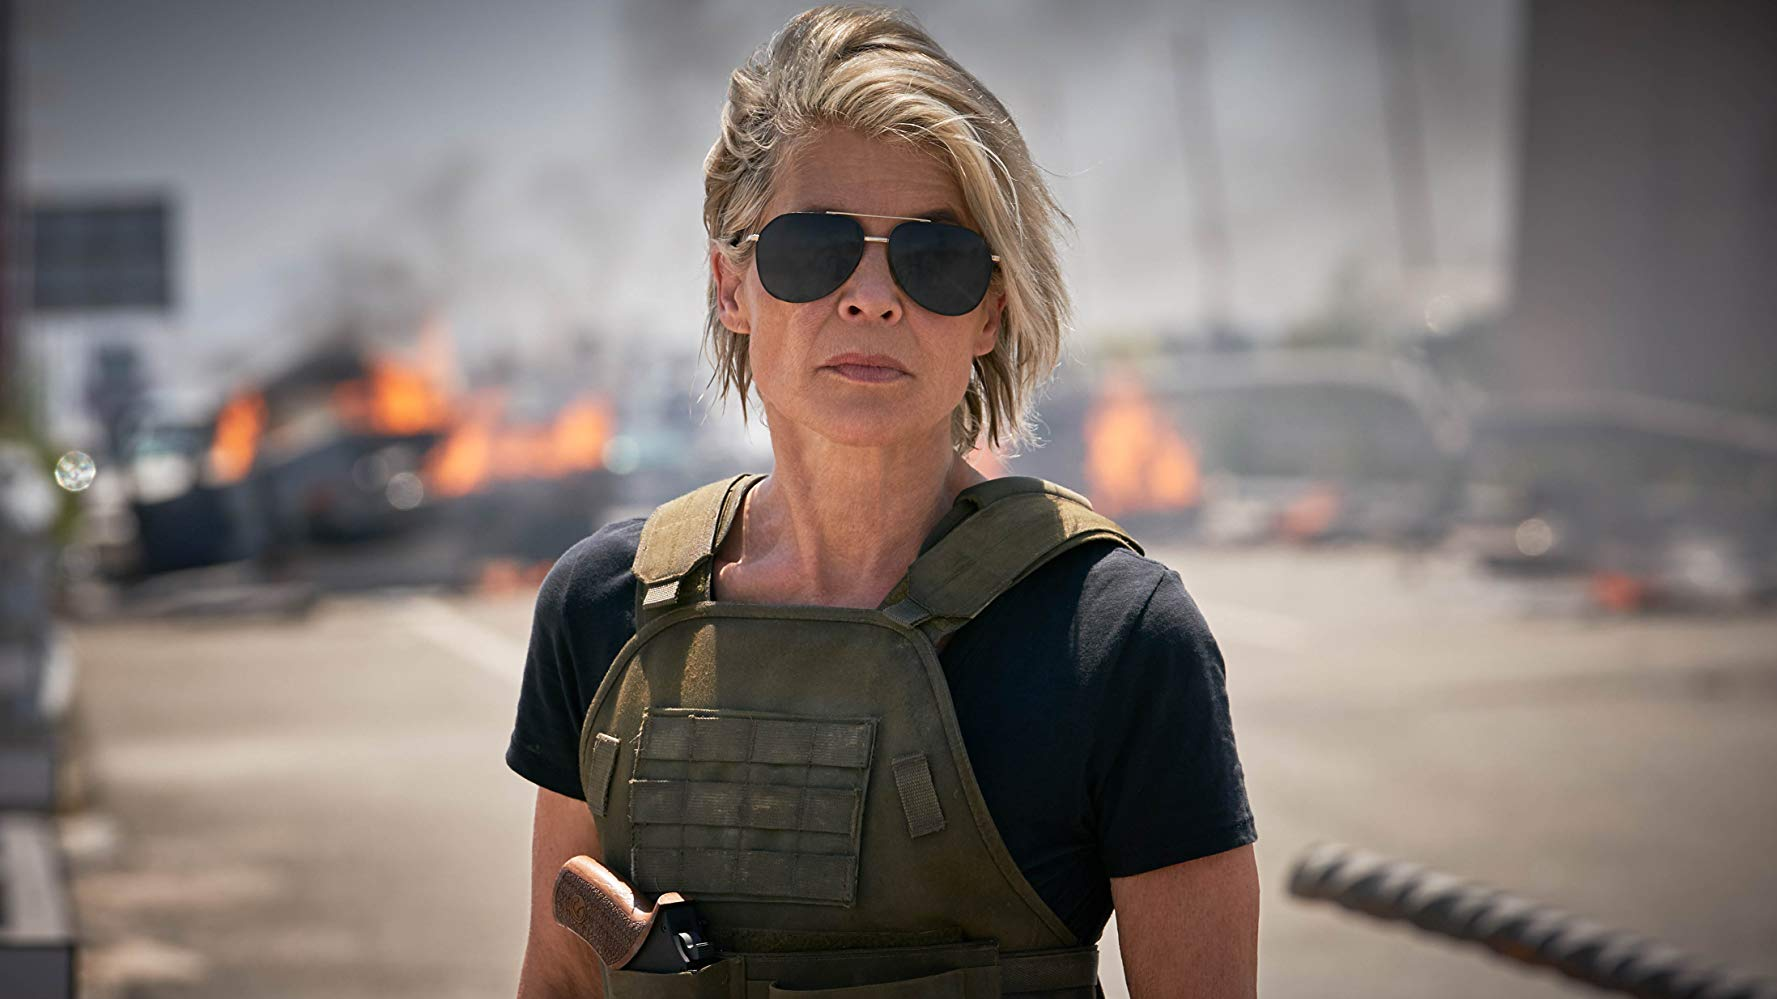 Sarah Conner wearing sunglasses and a kevlar vest stares menacingly at the camera.